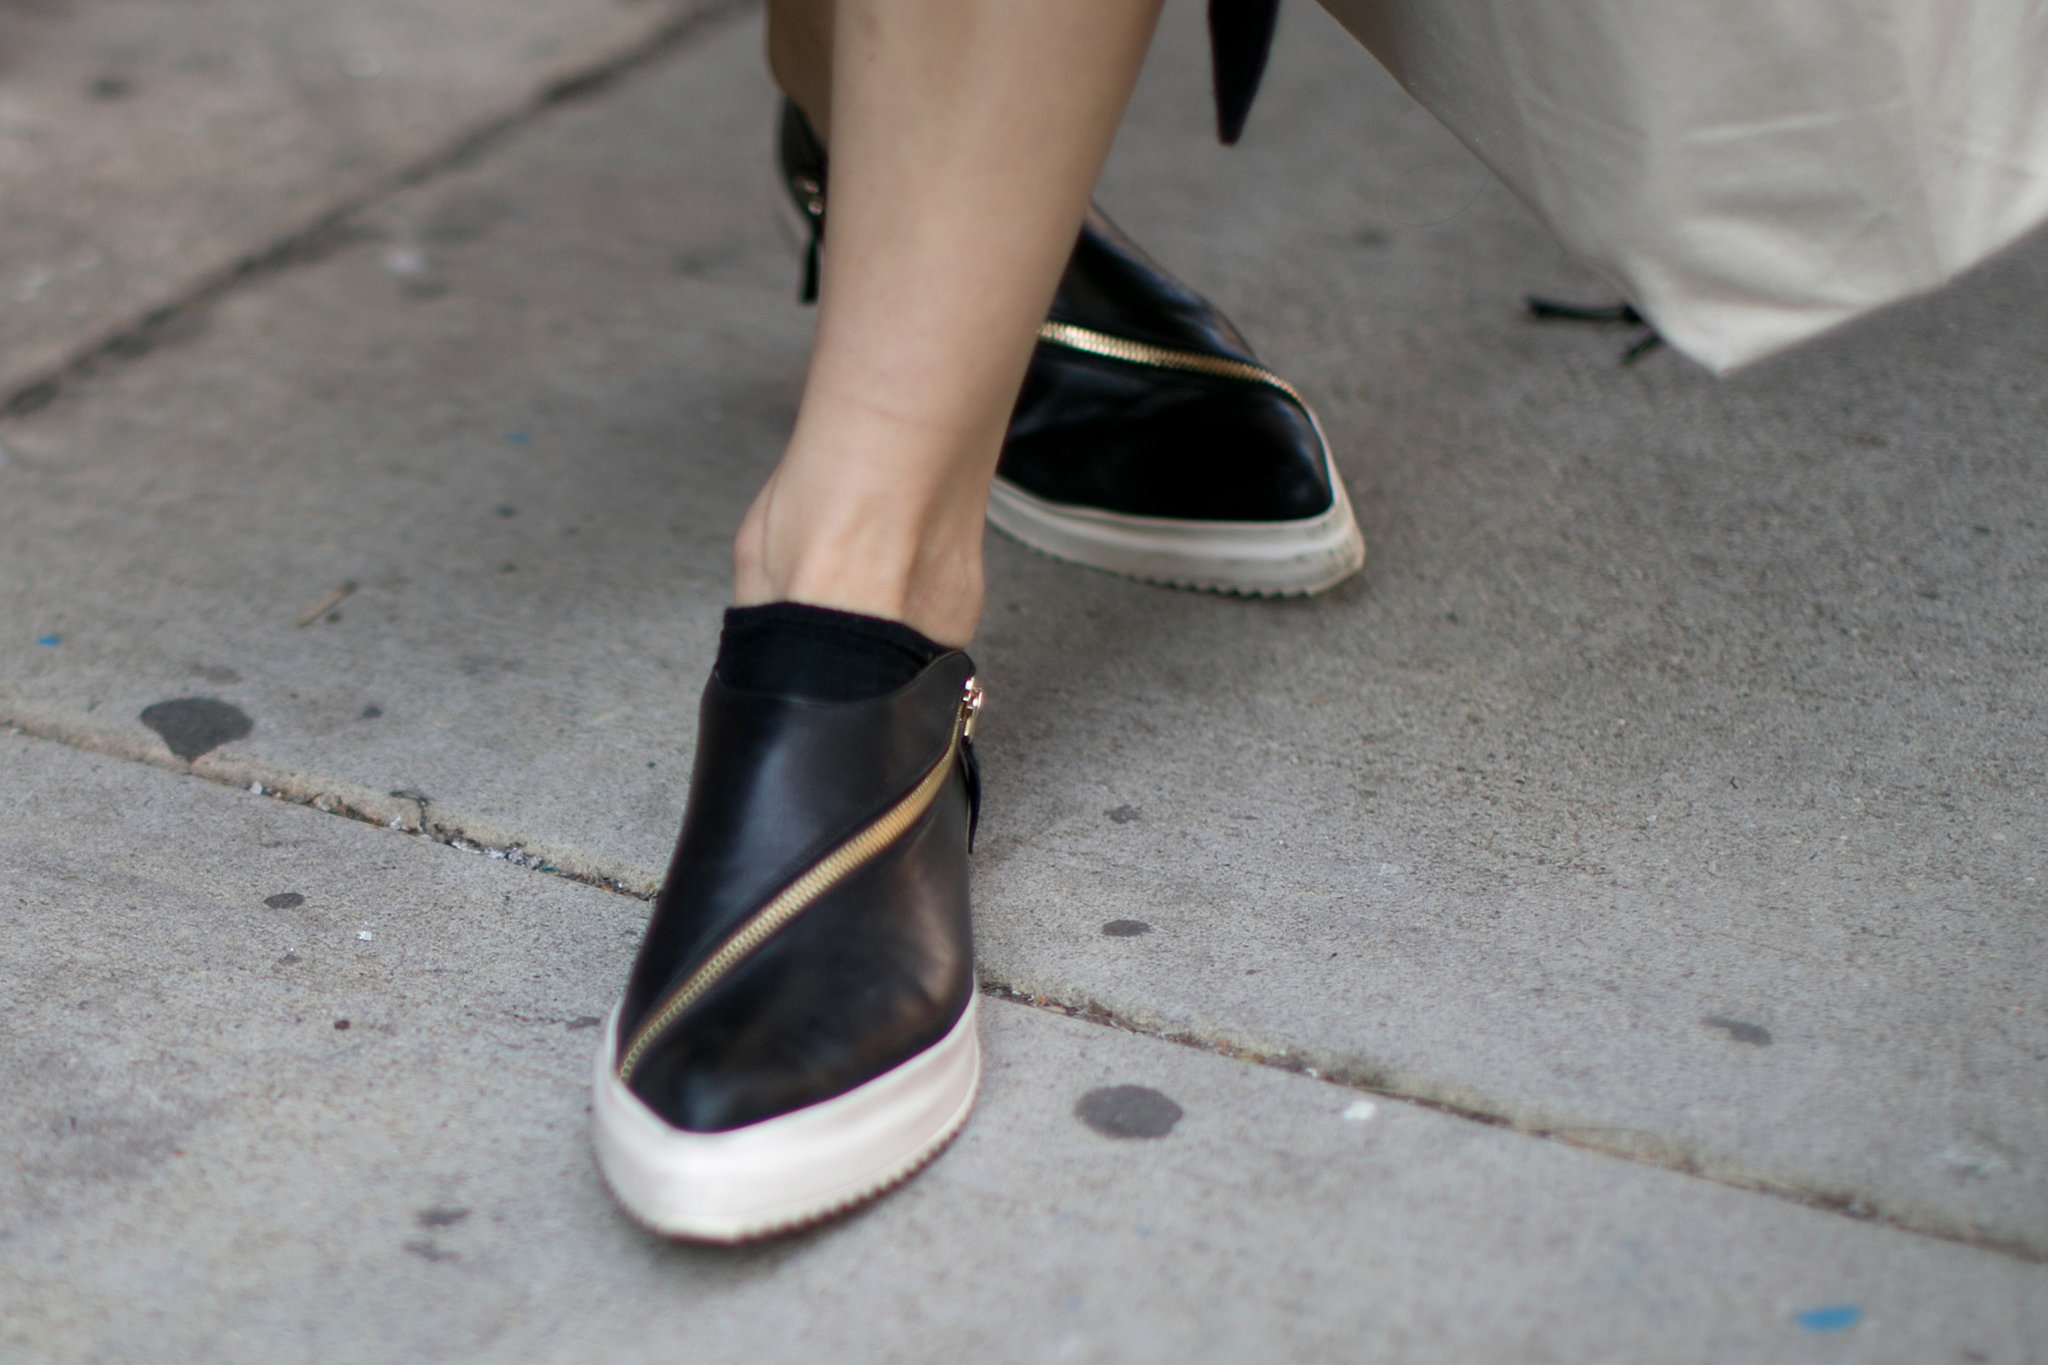 Slip-ons never looked cooler.